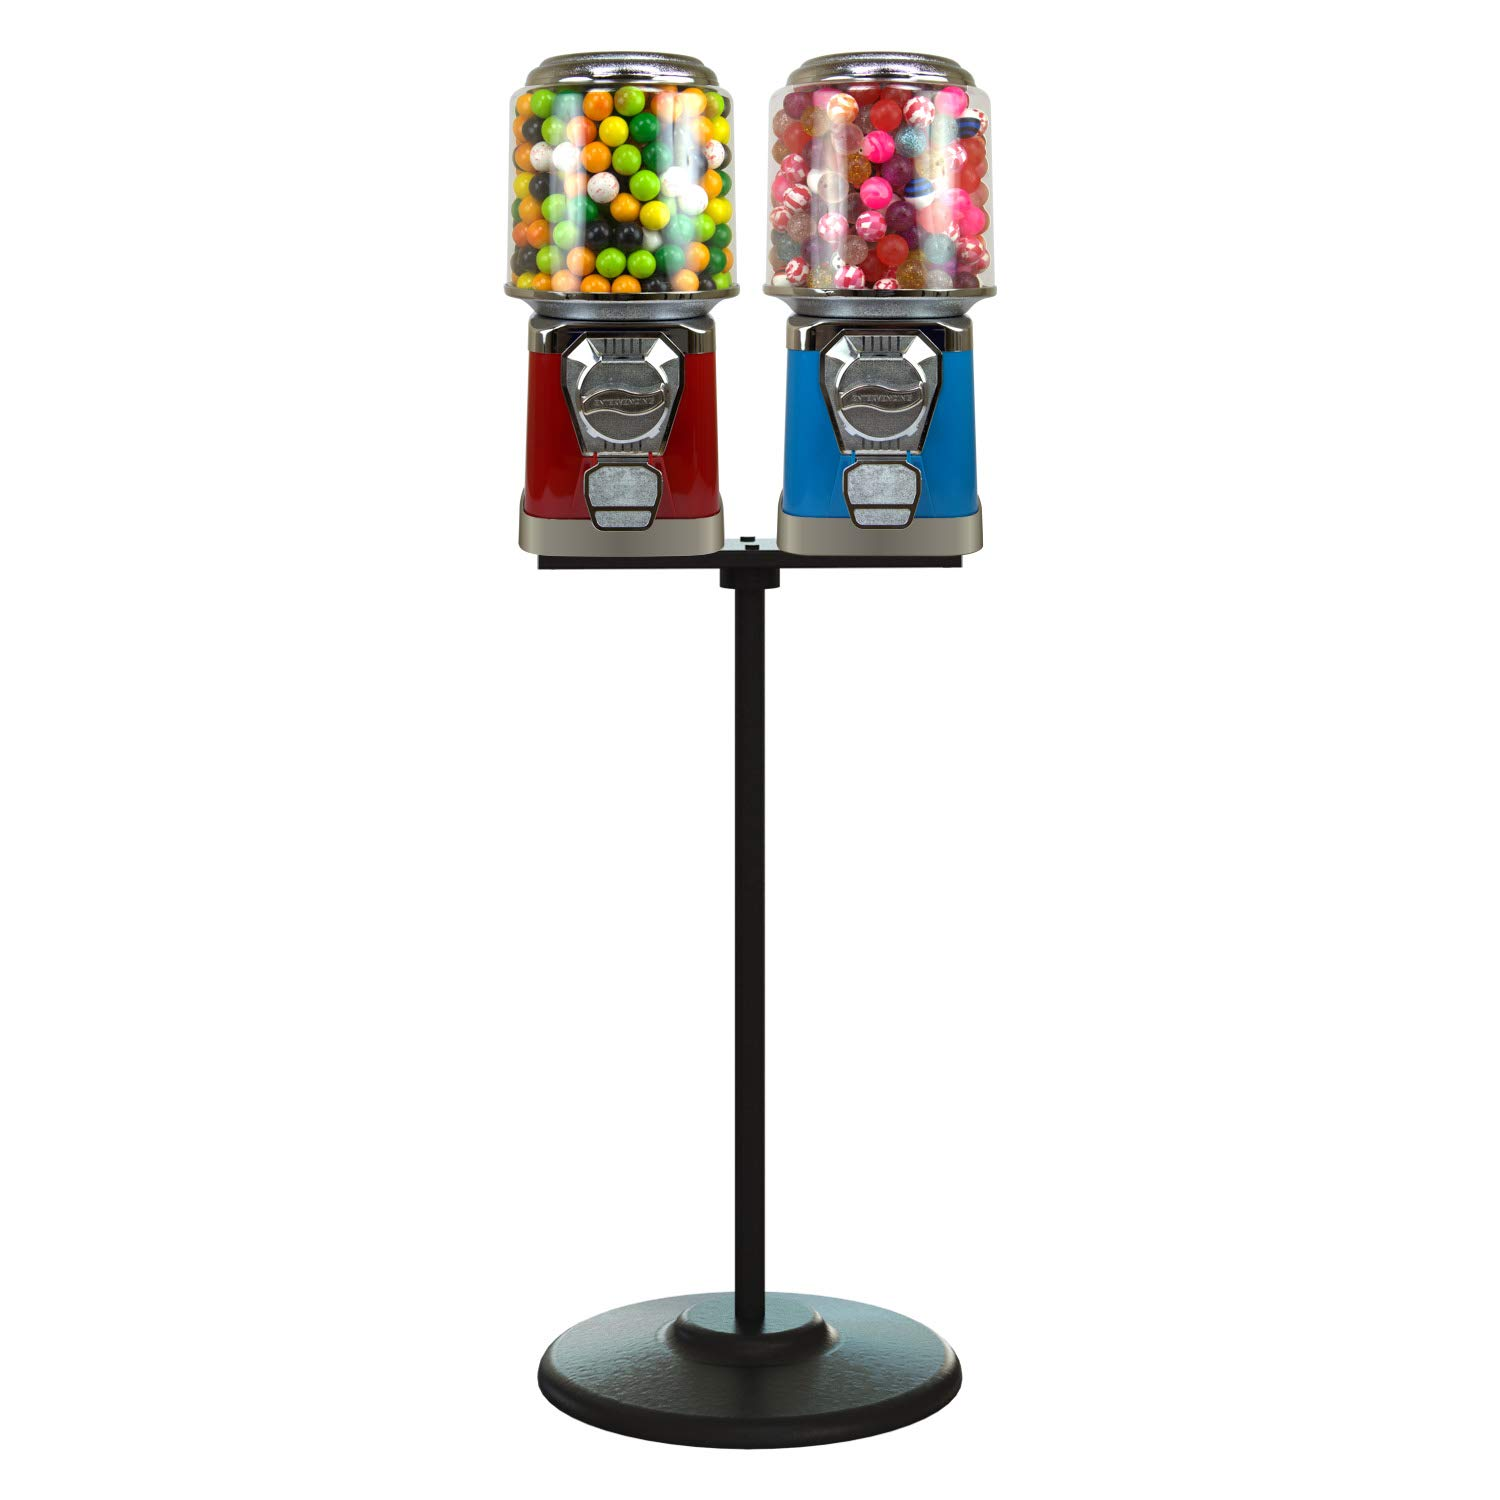 Gumball Machine National products with Al sold out. Stand - Red Vending Blue S and Machines